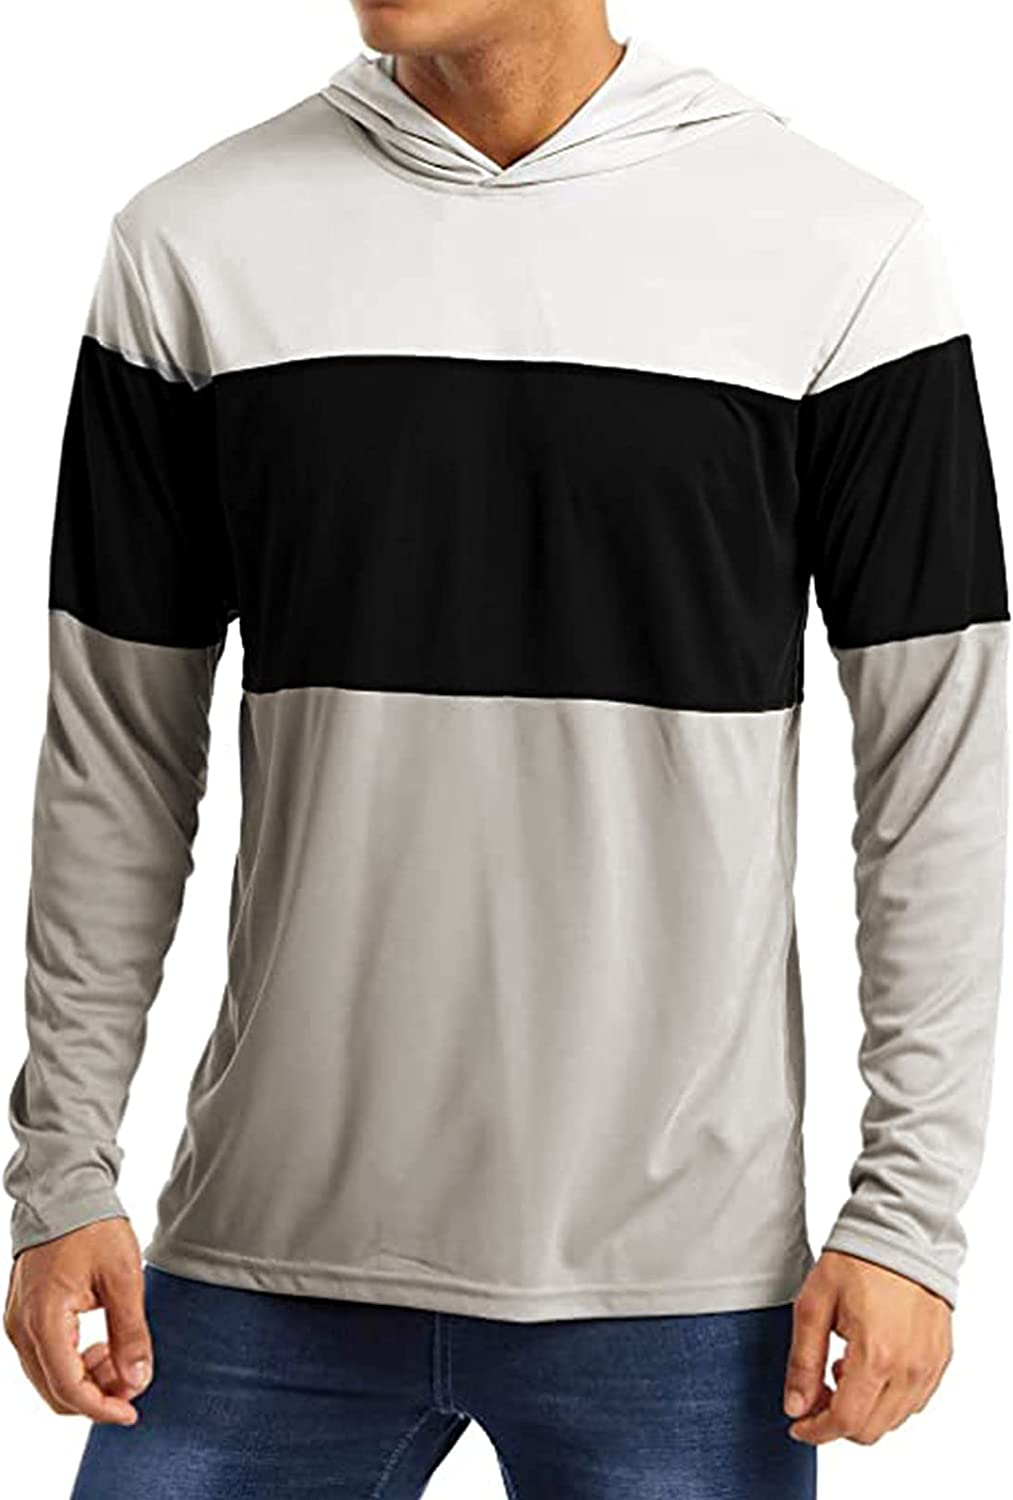 Long Sleeve Tee Shirts for Men with Hoodie Pullover T Shirt Running Workout Shirts, Athletic Fitness Gym Shirt